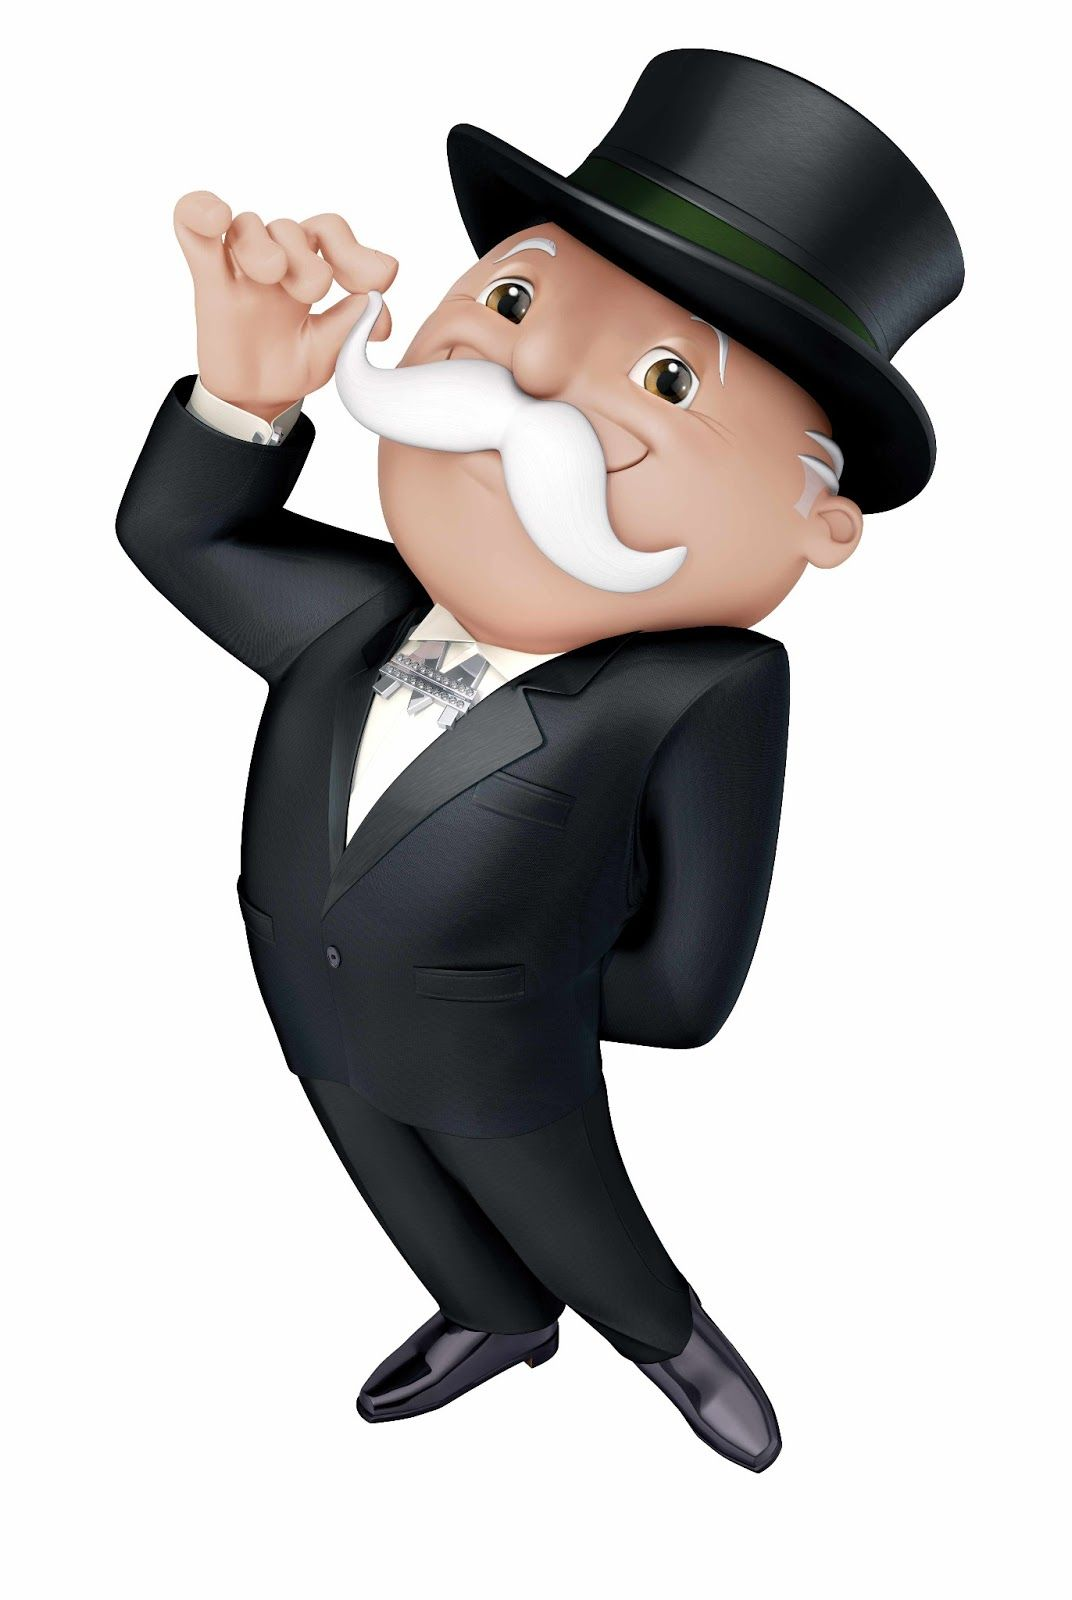 Mr clipart suited man. Monopoly small jpg shirts